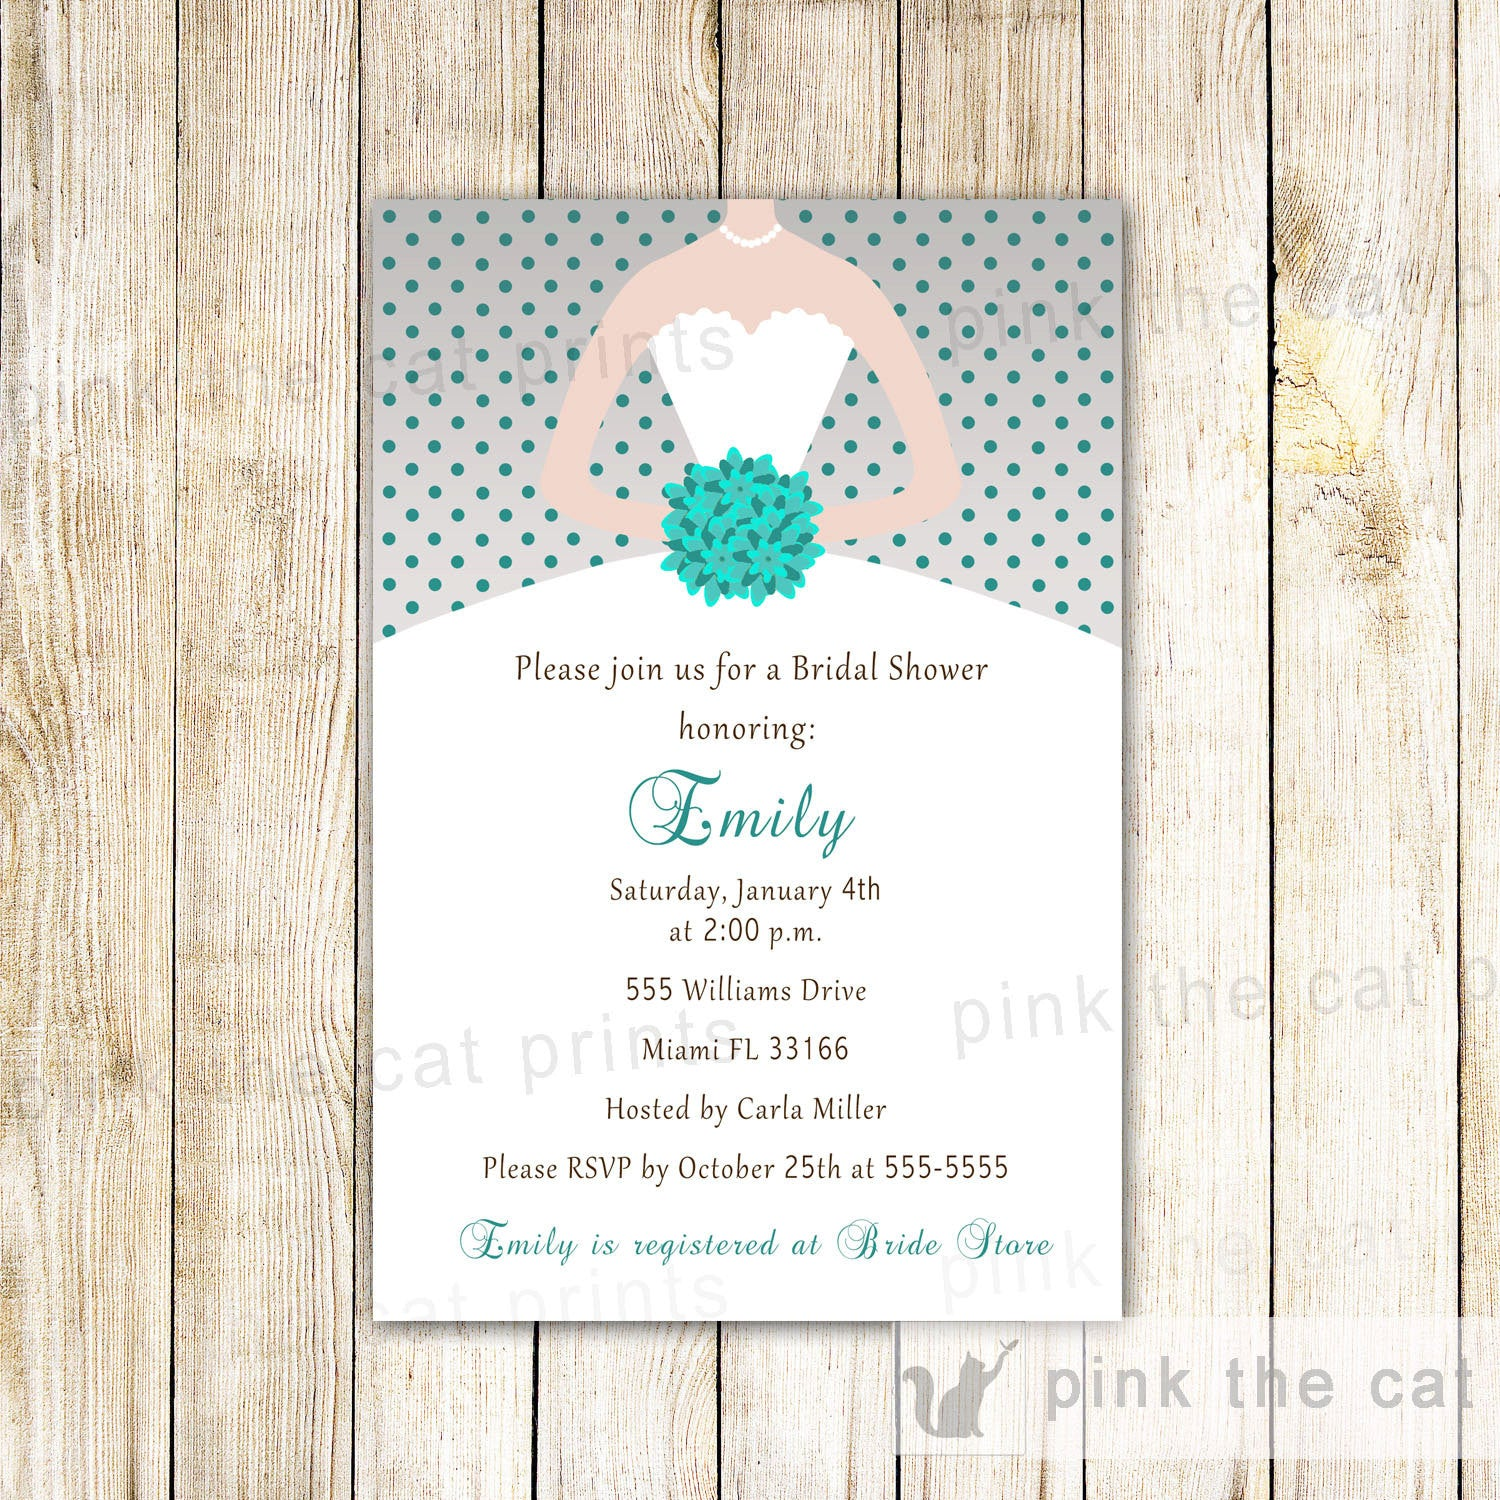 Grey turquoise teal dress bride bridal shower invitations pink the cat teal grey dress bridal shower invitation grey turquoise filmwisefo